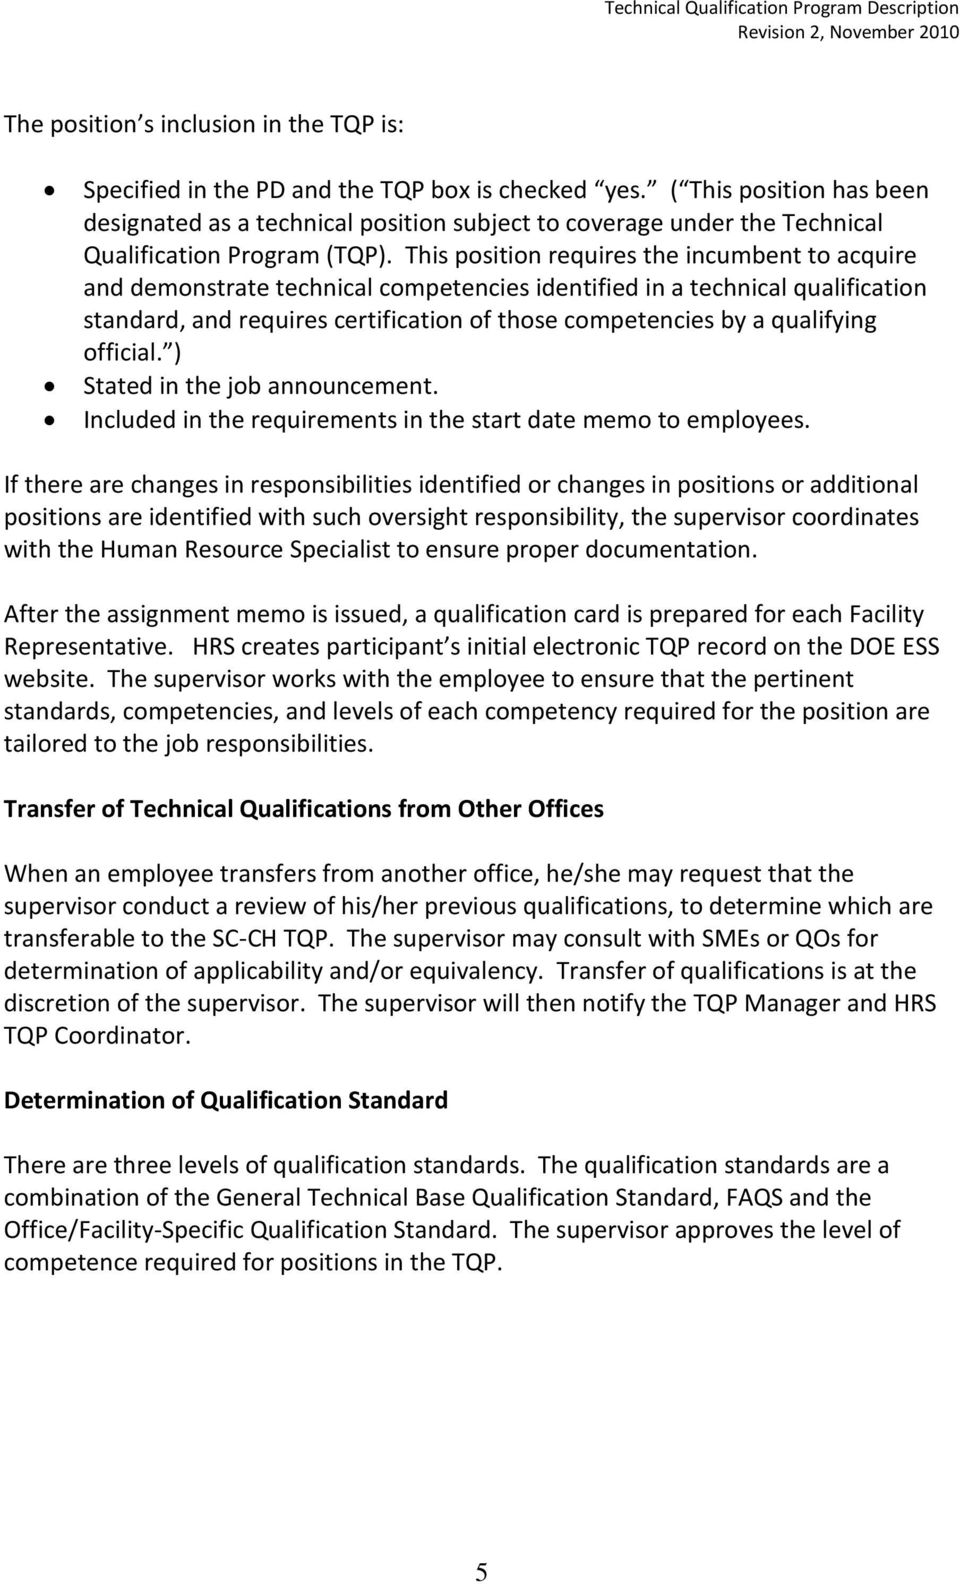 This position requires the incumbent to acquire and demonstrate technical competencies identified in a technical qualification standard, and requires certification of those competencies by a